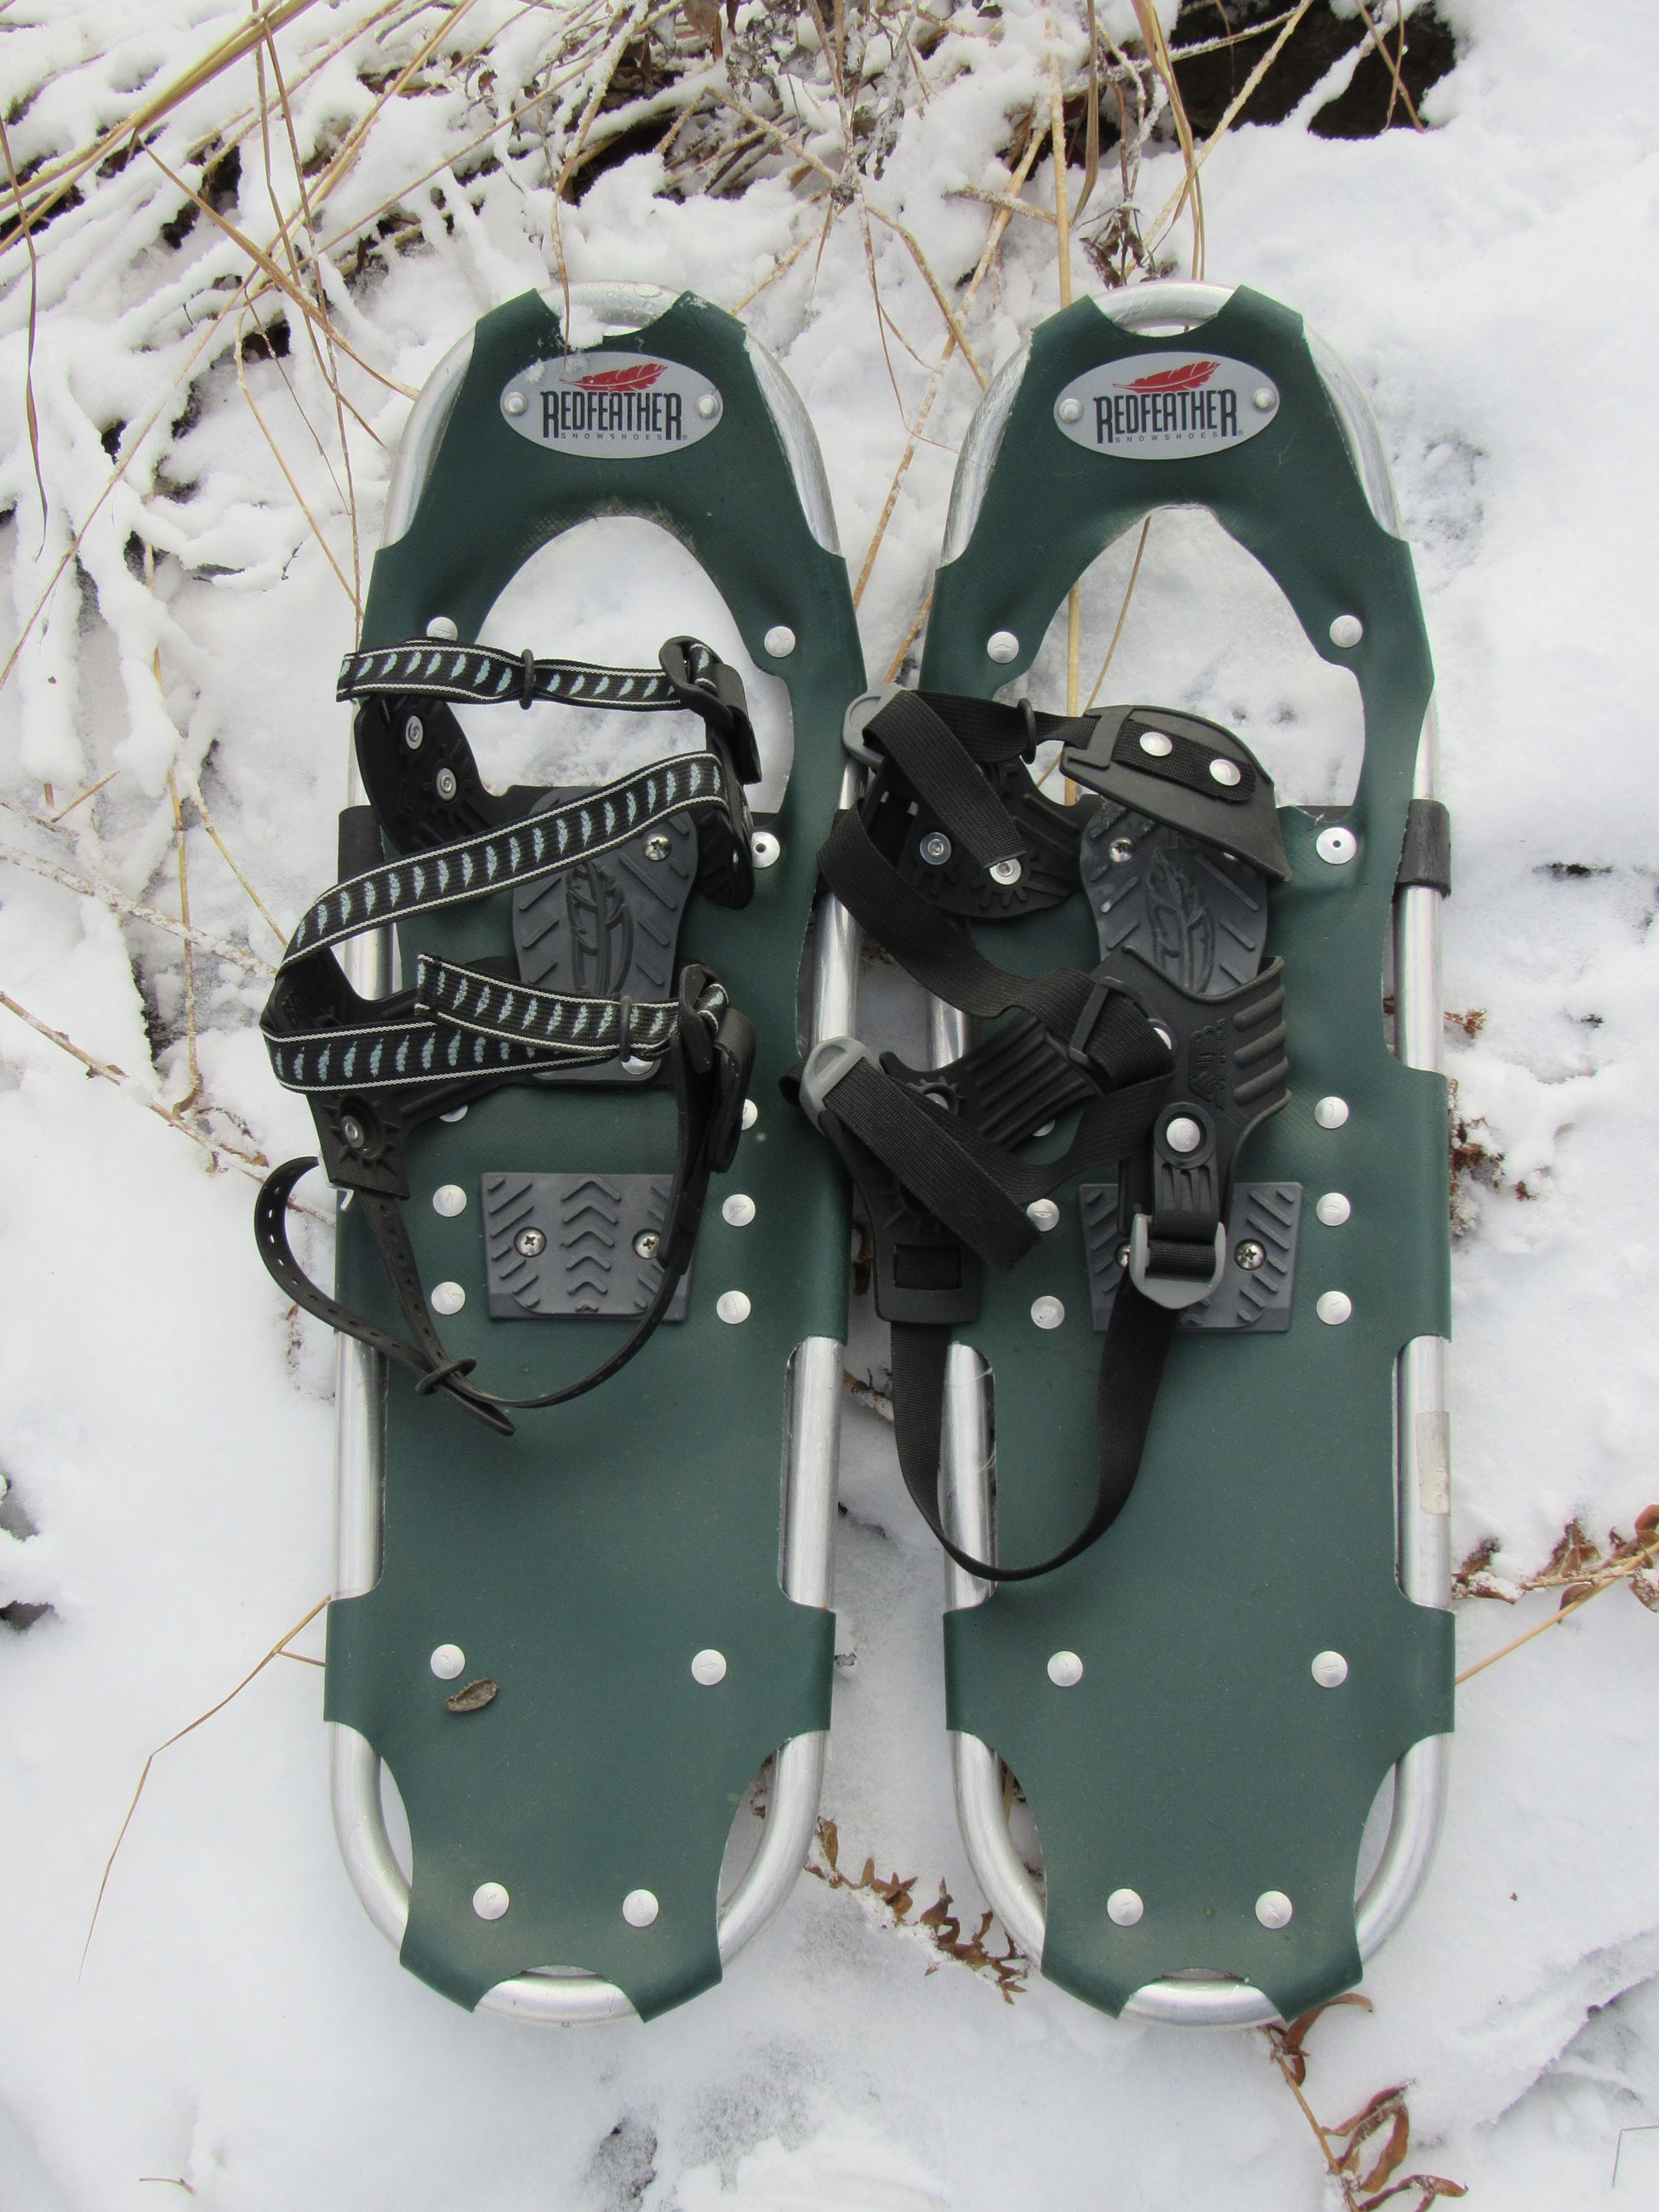 A pair of green modern snowshoes